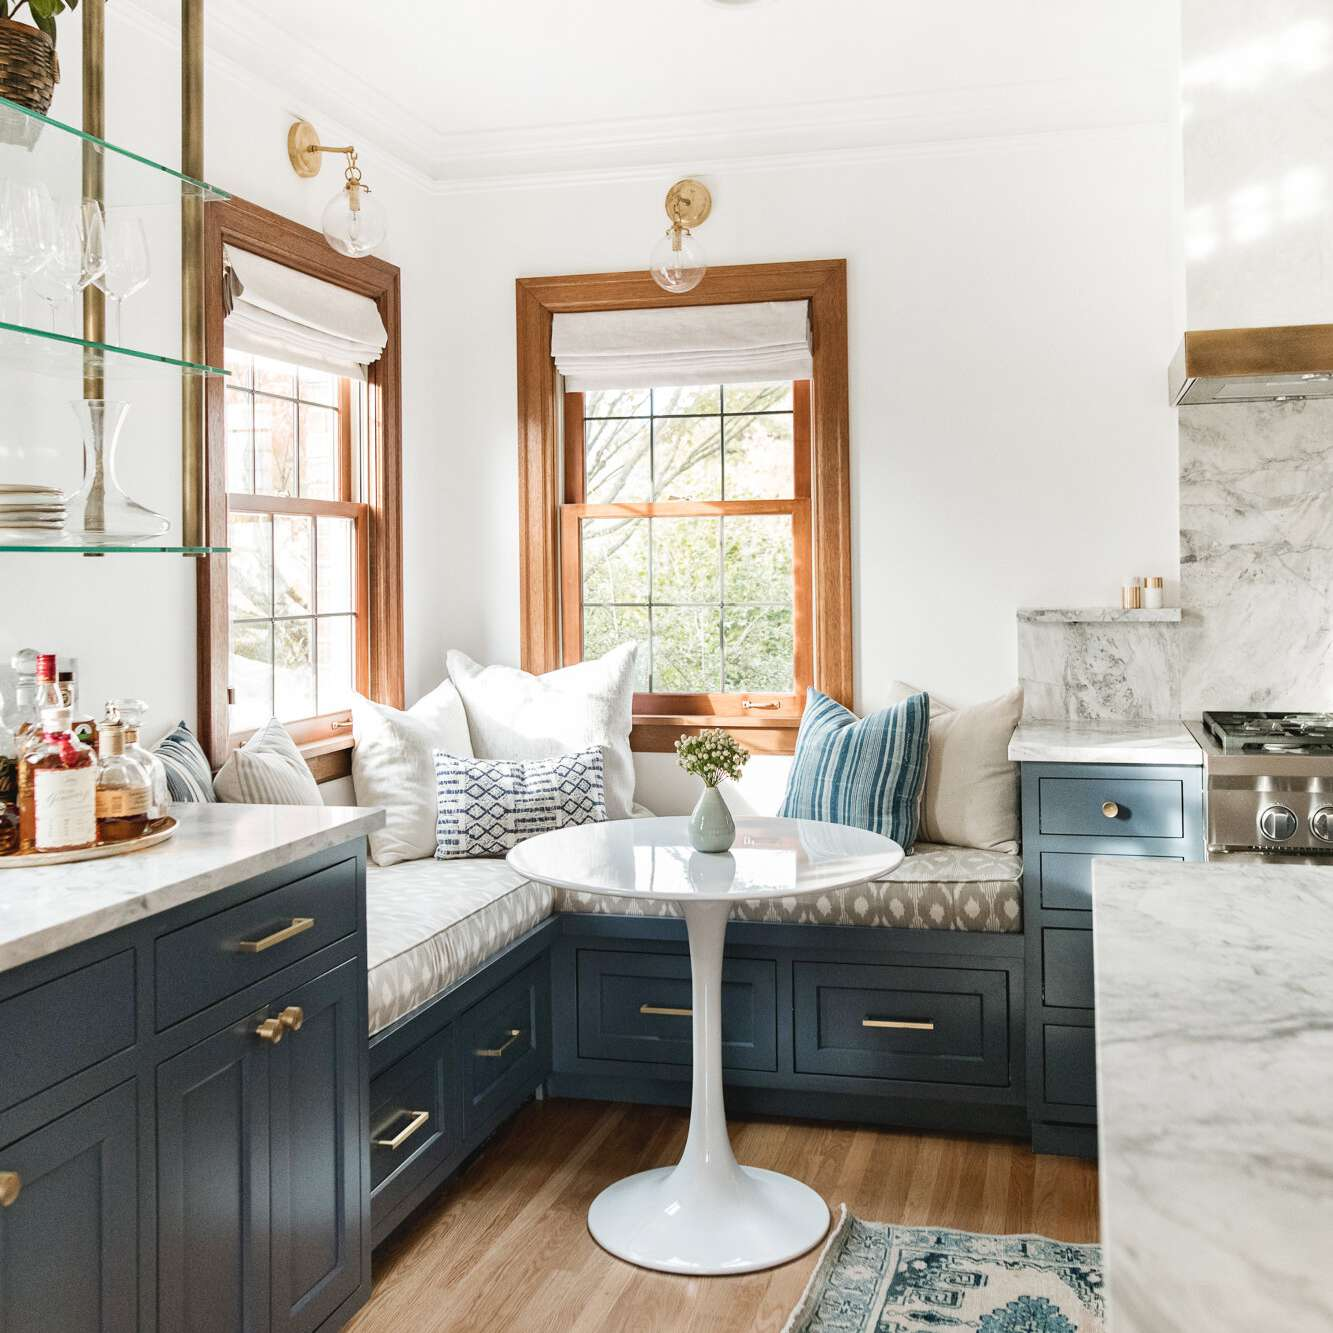 A kitchen banquette built on top of navy cabinets